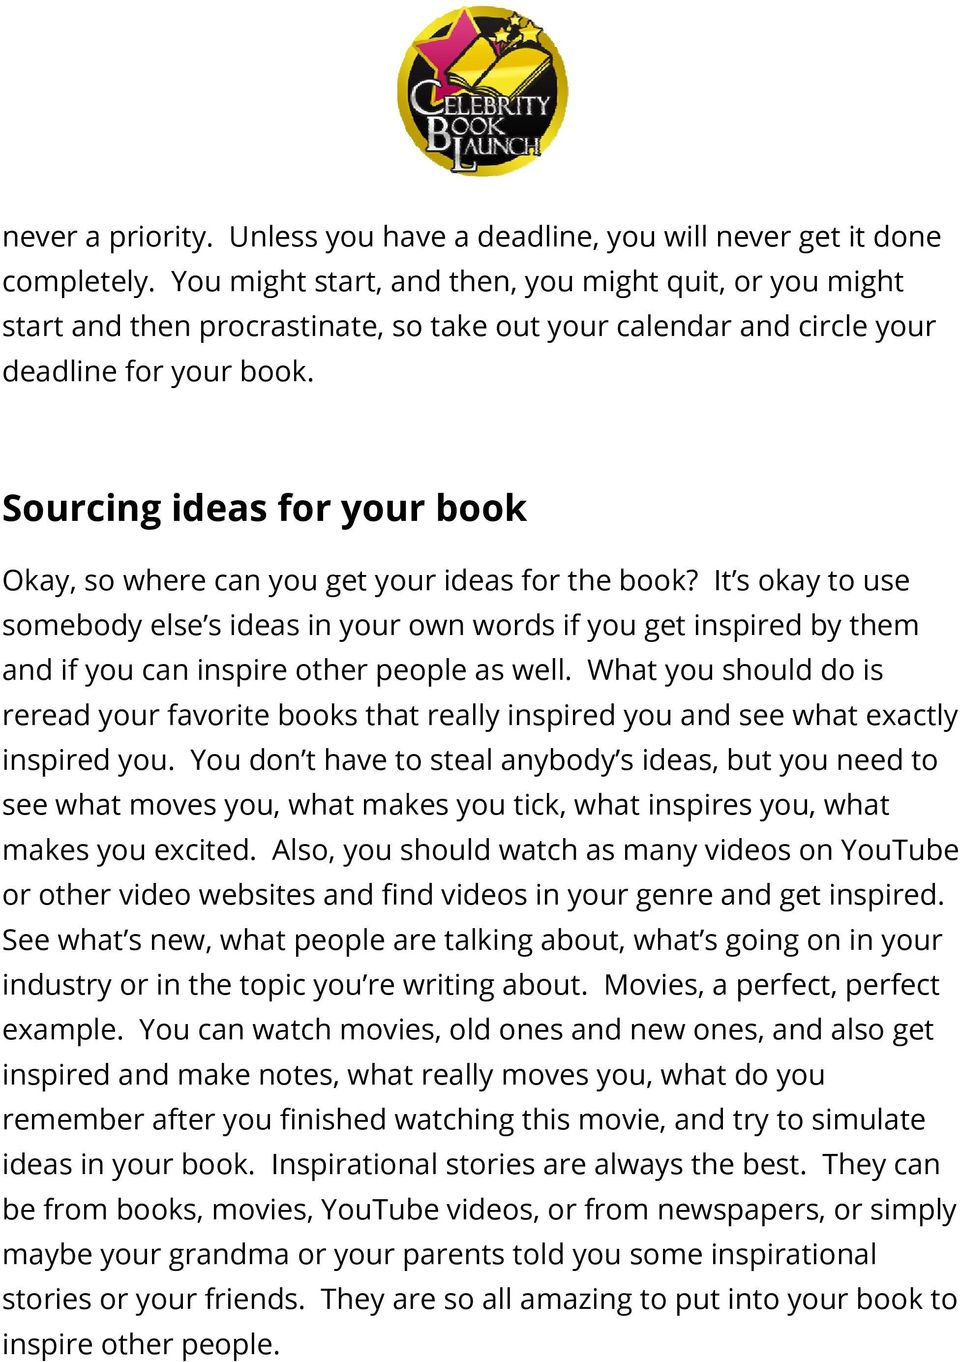 Sourcing ideas for your book Okay, so where can you get your ideas for the book?